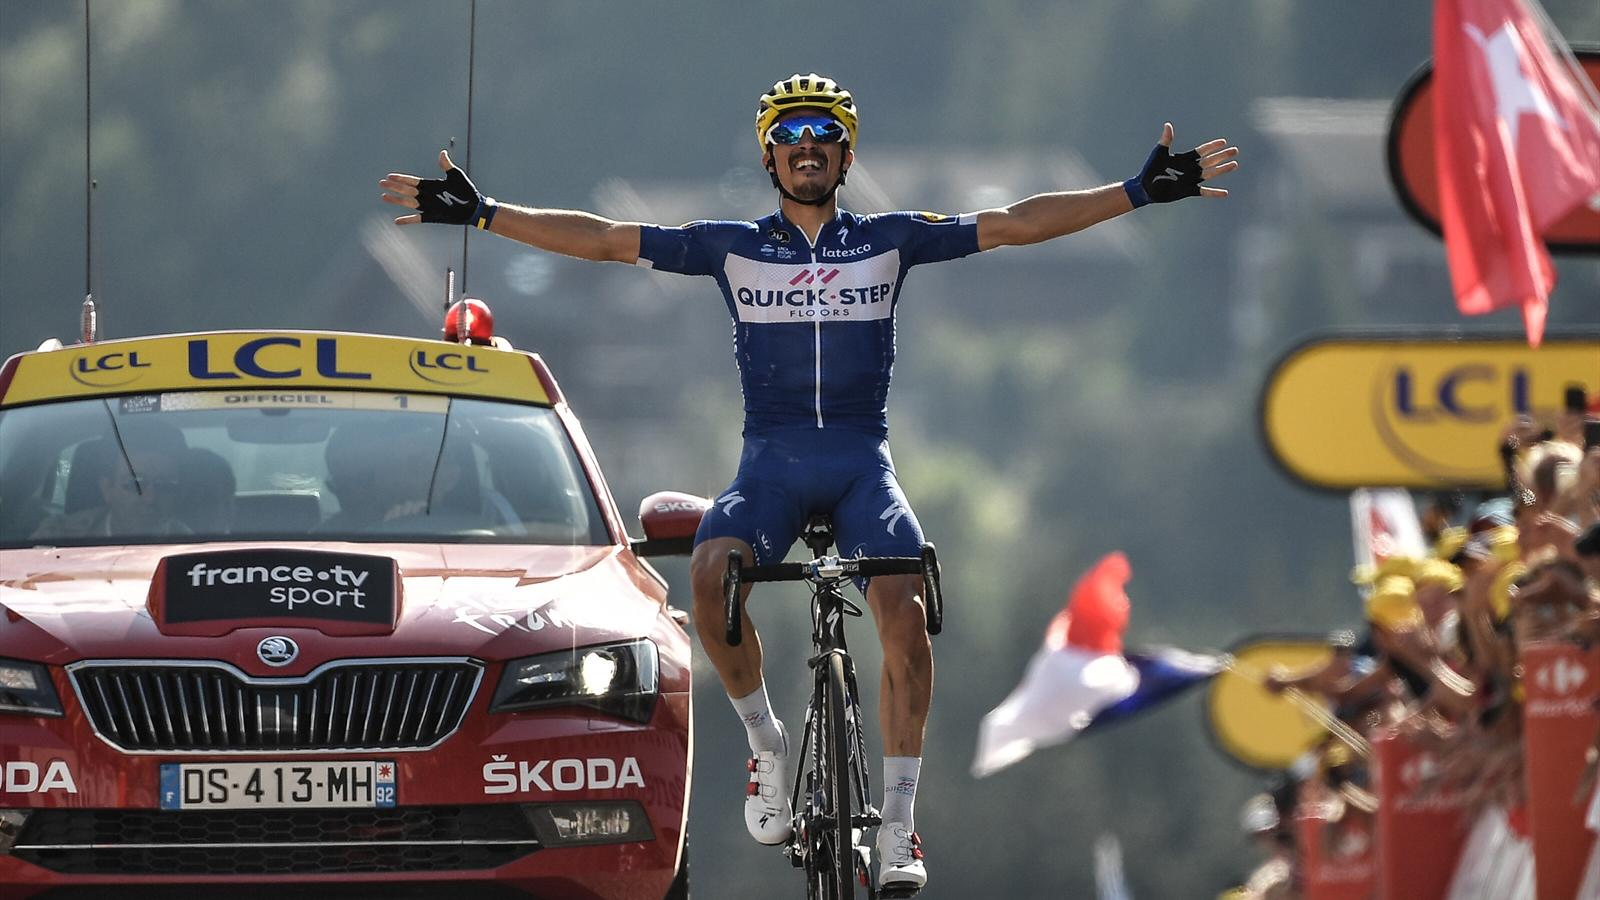 ca7cb6e48bc Tour de France 2018: Julian Alaphilippe in polka dots after soloing to Stage  10 glory